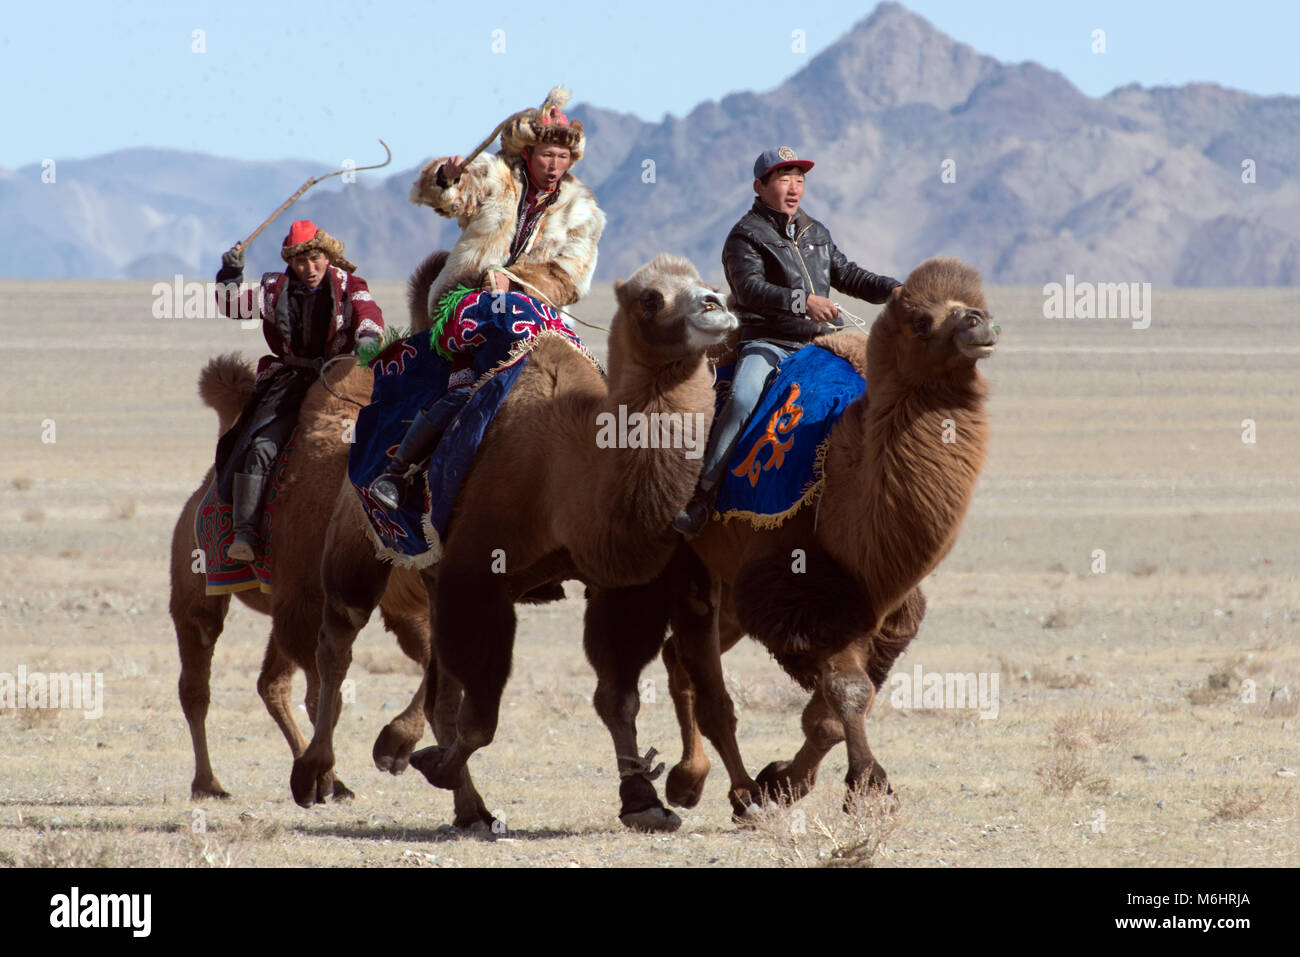 Kazakh men compete in a camel race at the 2017 golden eagle festival in Olgii, western Mongolia. - Stock Image